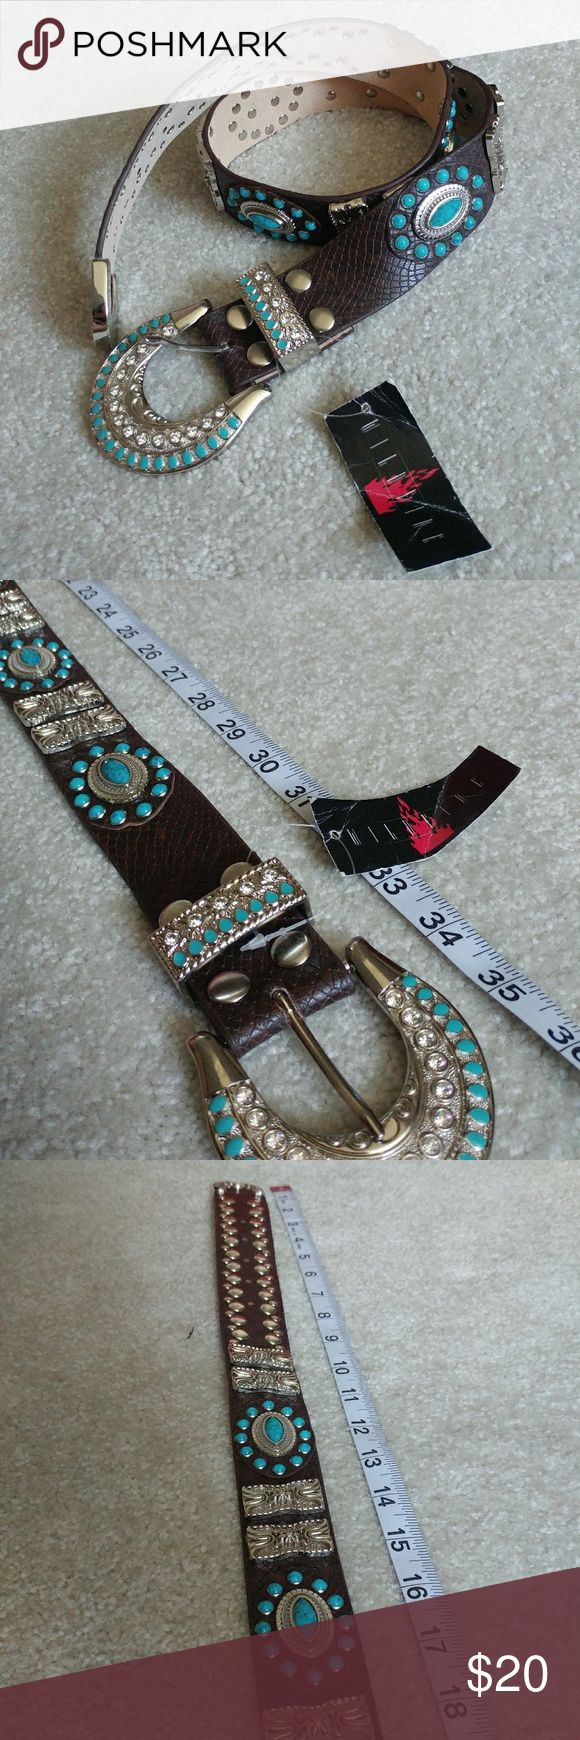 WESTERN BLING BELT 2 bling belts new with tags. Very well made! Will bundle for savings! Measuring the entire strap one is 34 and one is 36. wildfire Accessories Belts